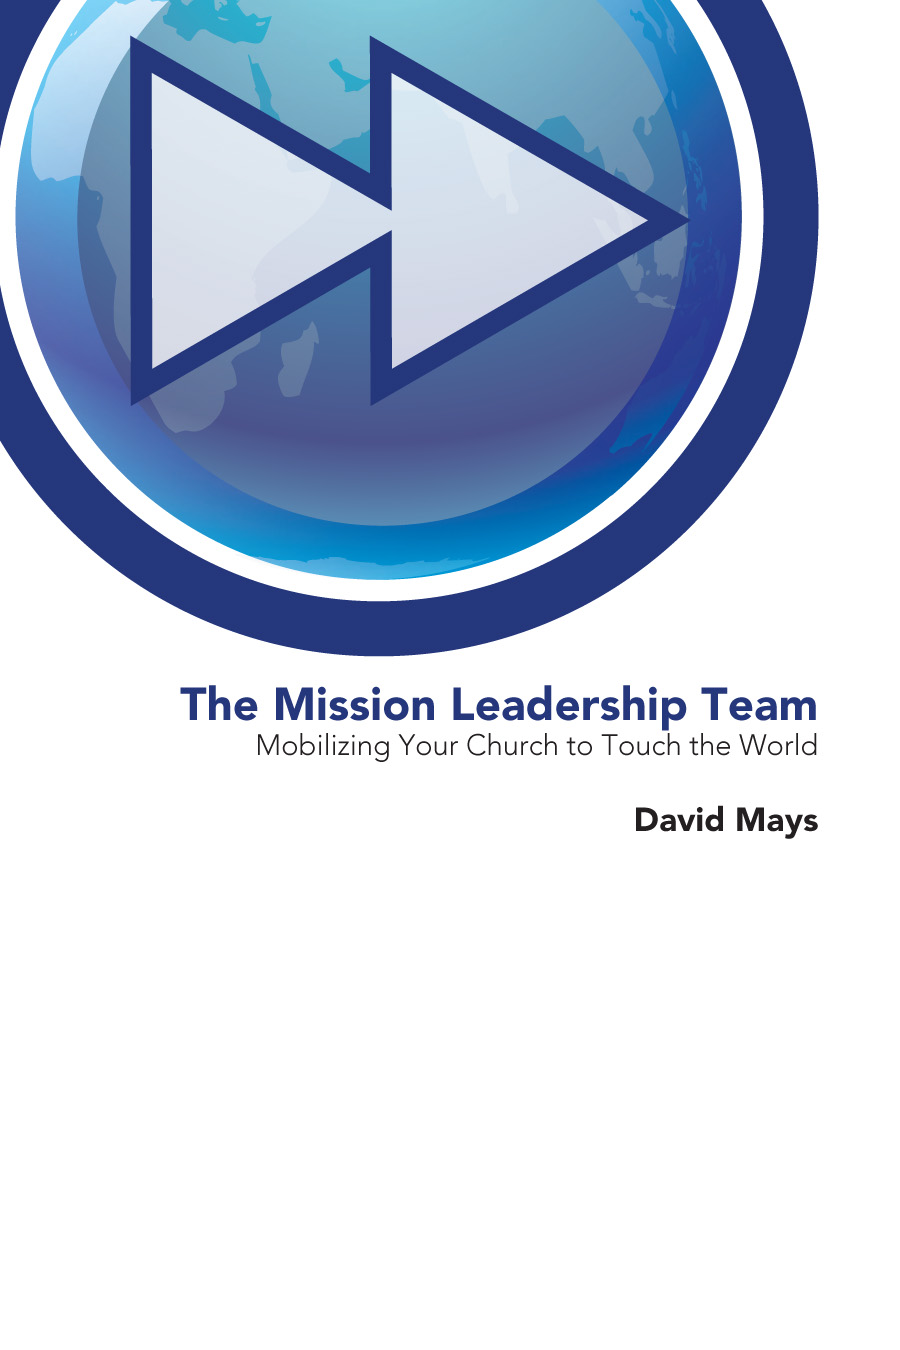 The Mission Leadership Team Mobilizing Your Church to Touch the World